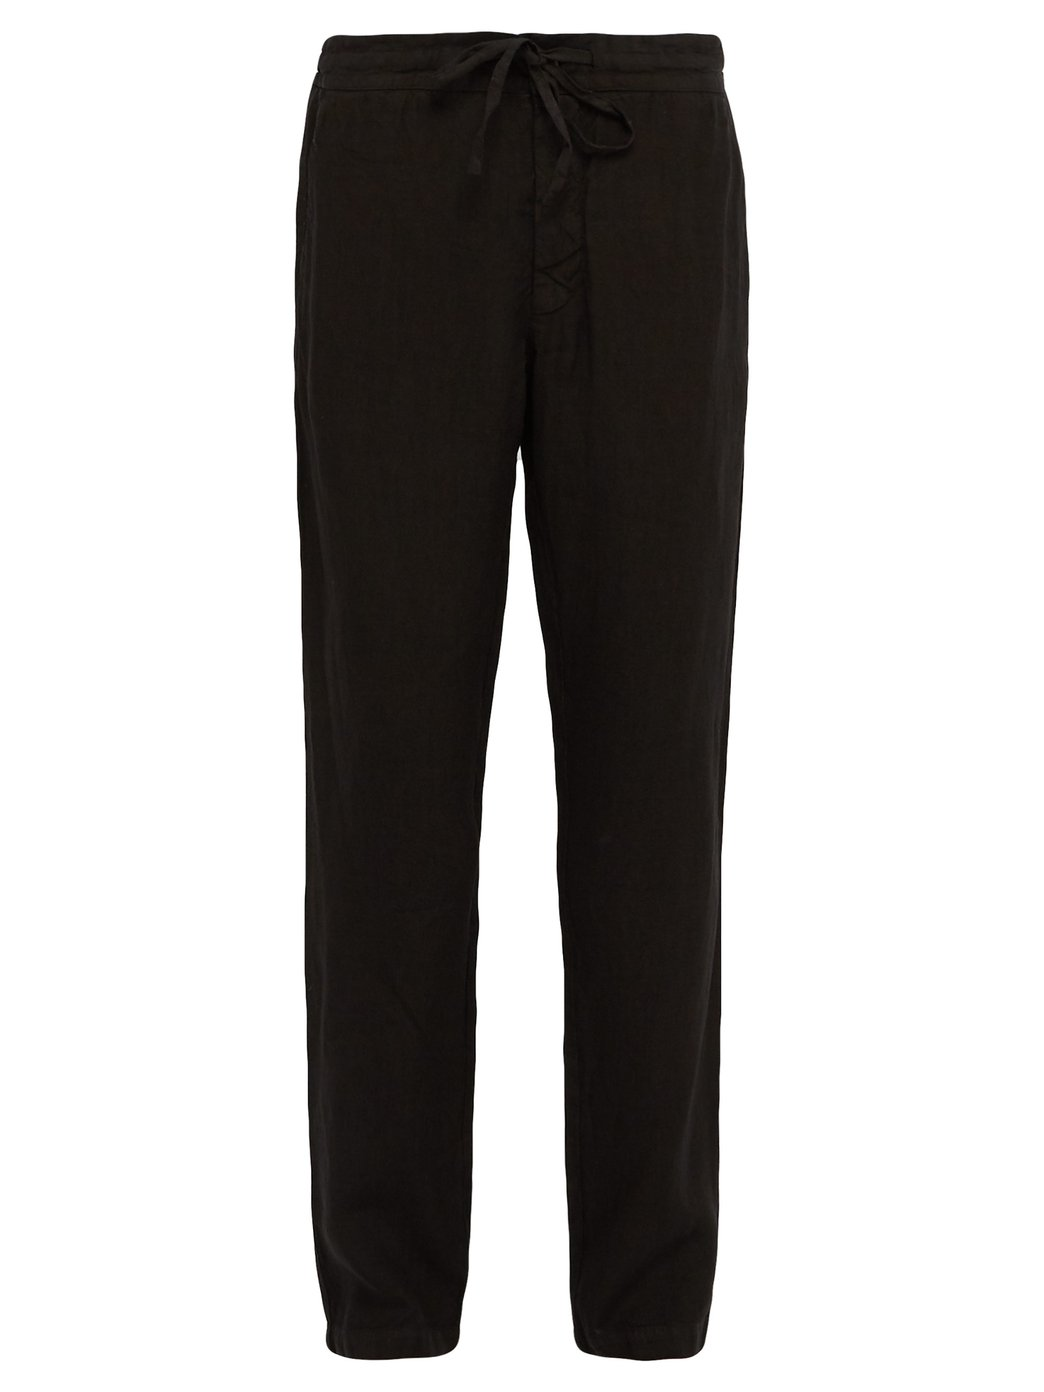 120% lino linen trousers - Everyone should have some linen trousers for summer. This is a simple drawstring pair (which most are) that is 100% linen.SELLOUT RISK: LOW MED HIGHPurchase now at matchesfashion.com for $285.00